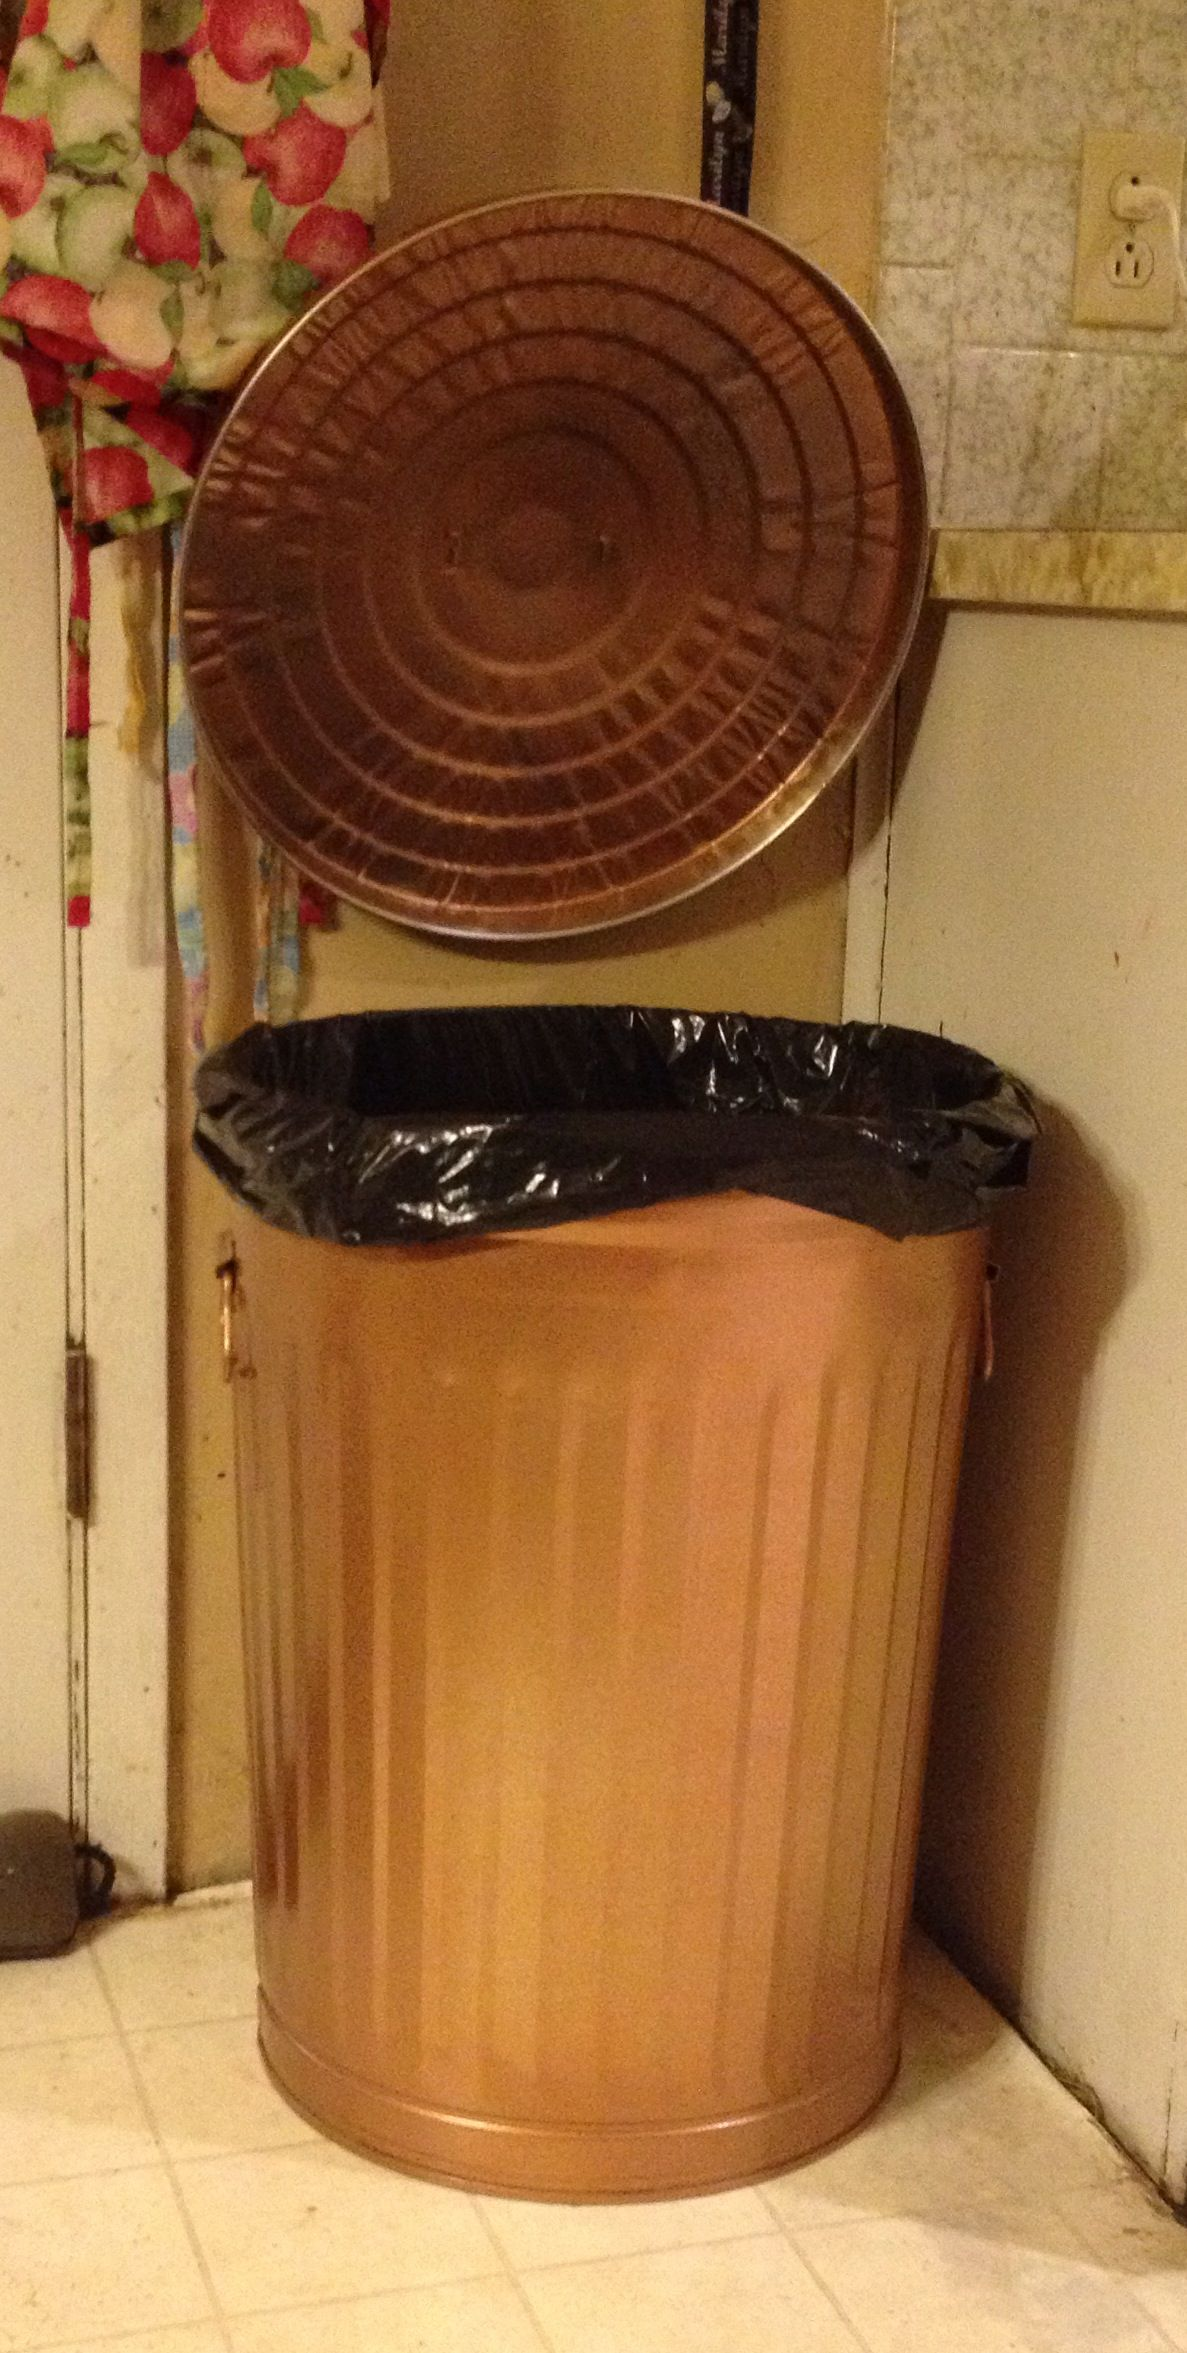 Kitchen Trash Can. Lid Hanging On Coat Hook. Painted Copper To Match Decor.